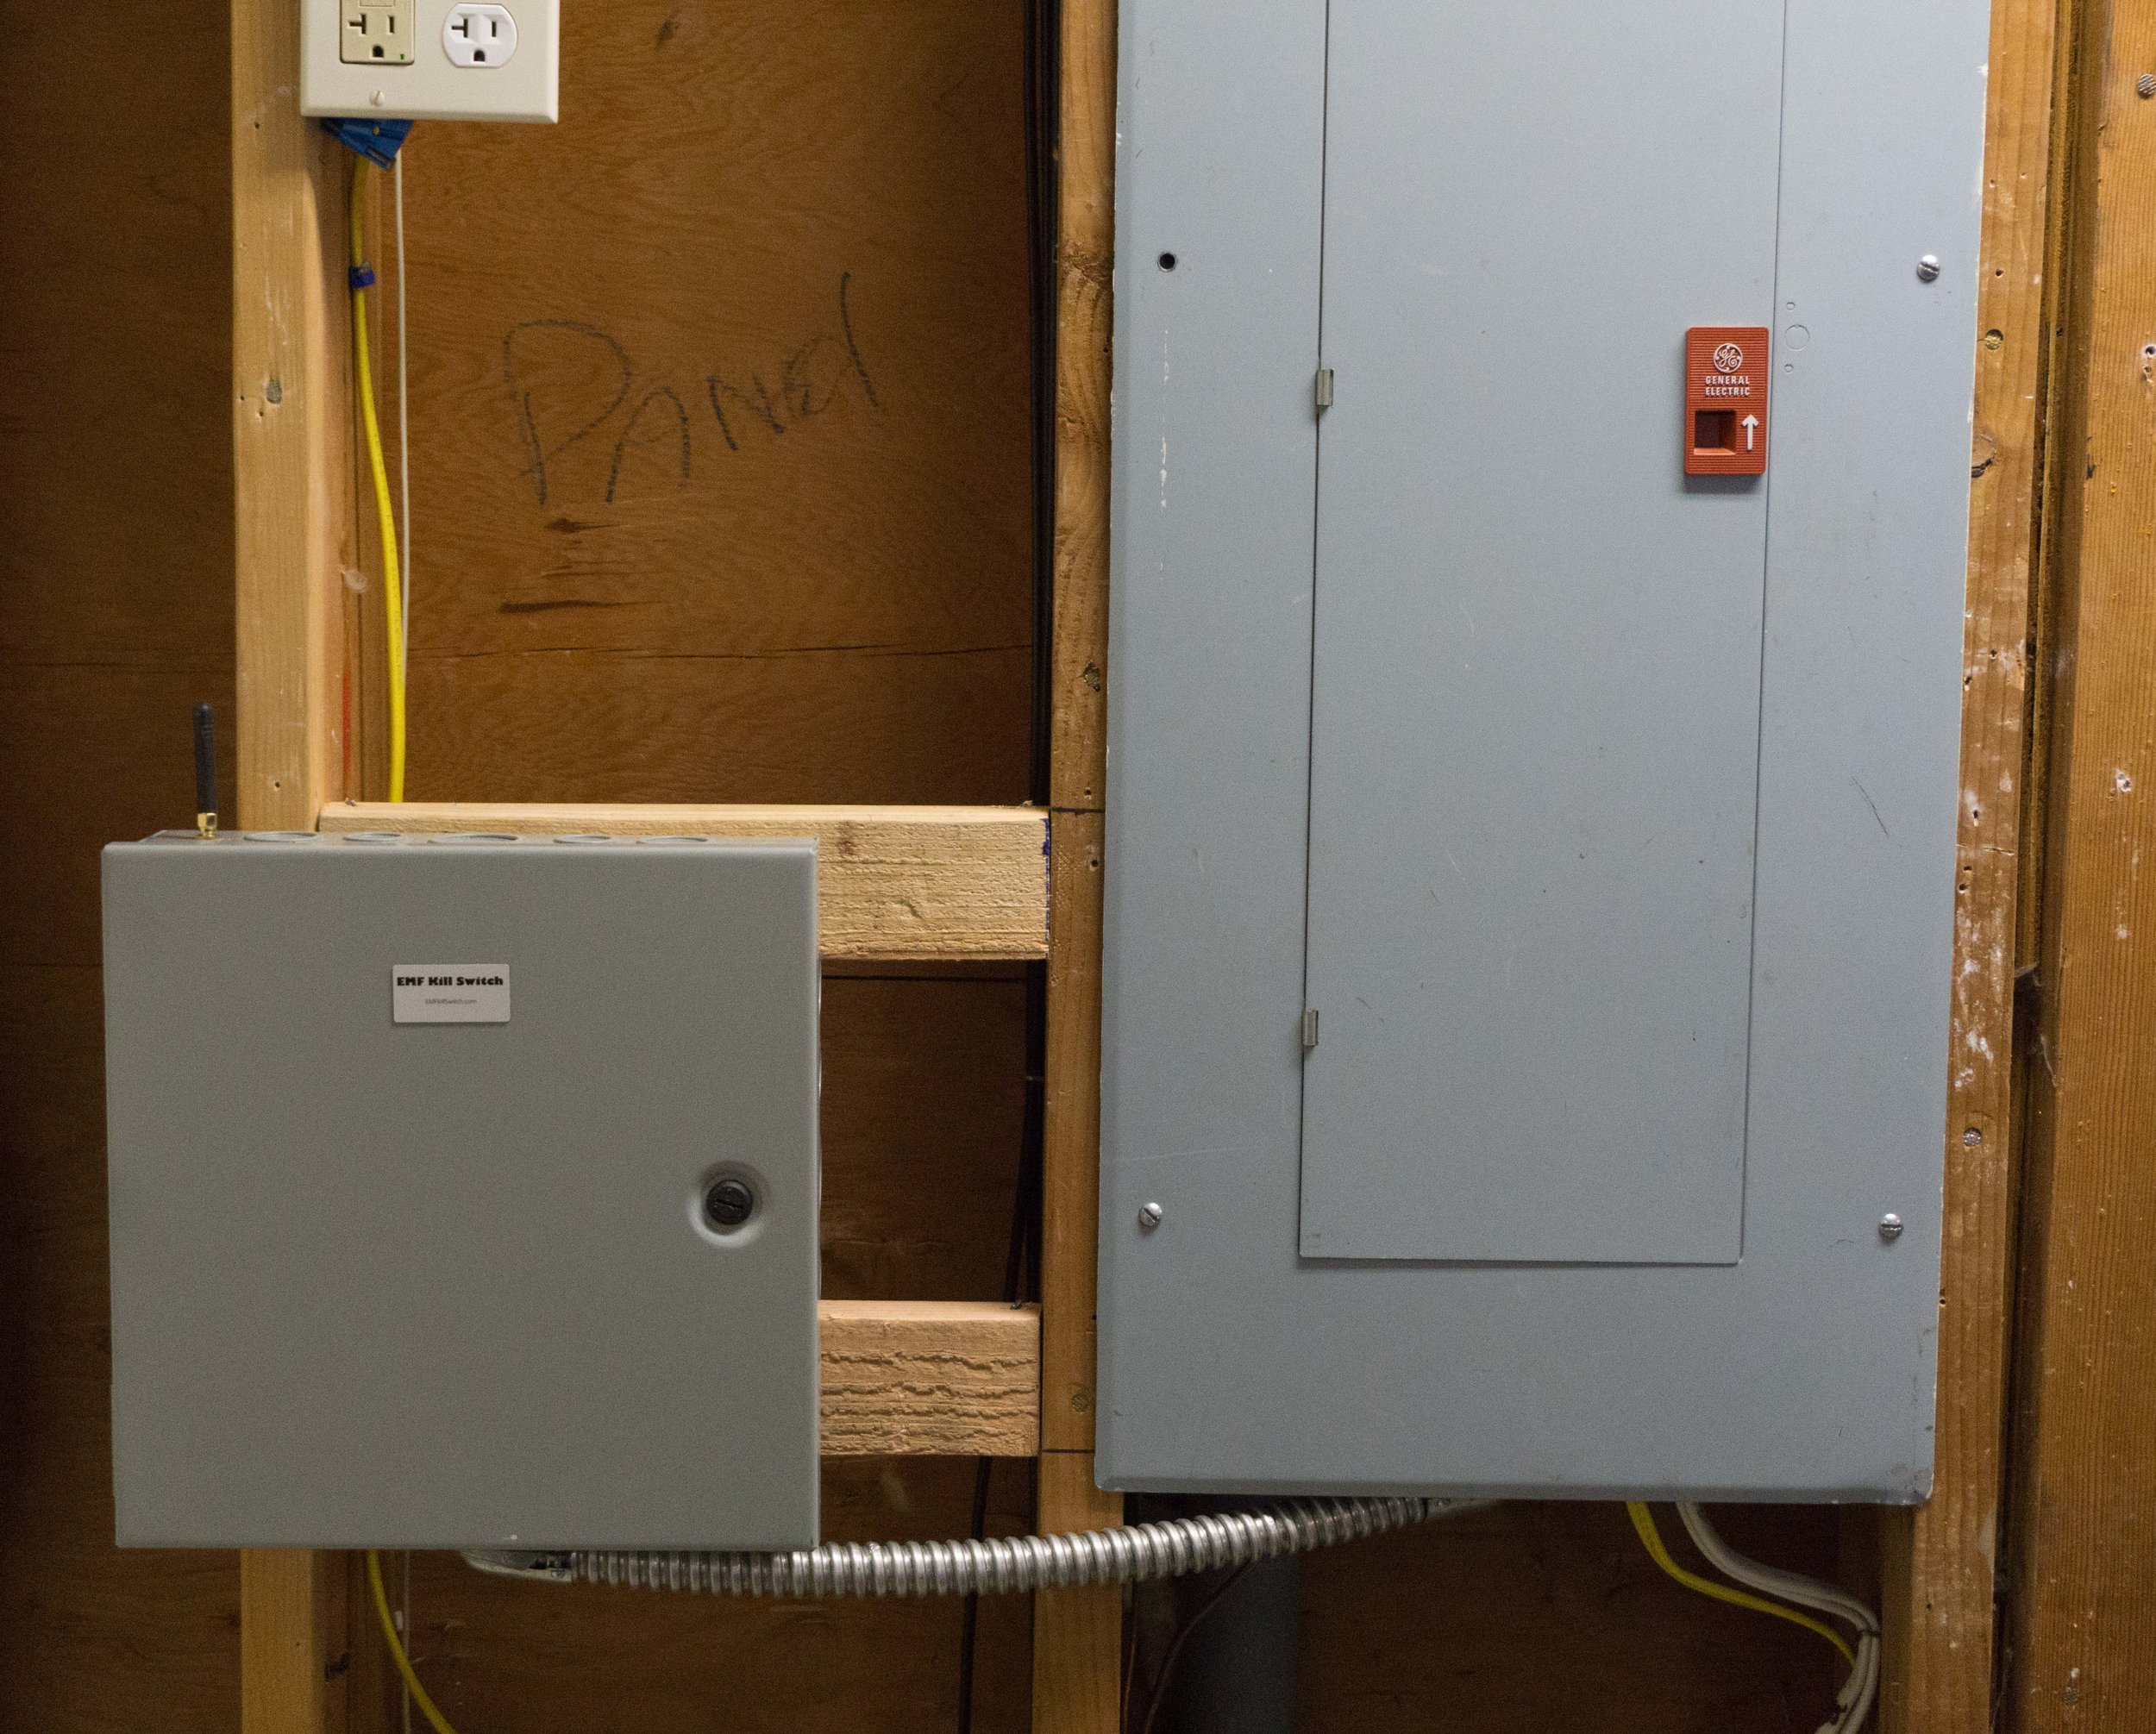 THIS PICTURE SHOWS A TYPICAL GARAGE INSTALLATION WITH THE EMF KILL SWITCH MOUNTED NEXT TO THE HOME'S MAIN ELECTRICAL PANEL.